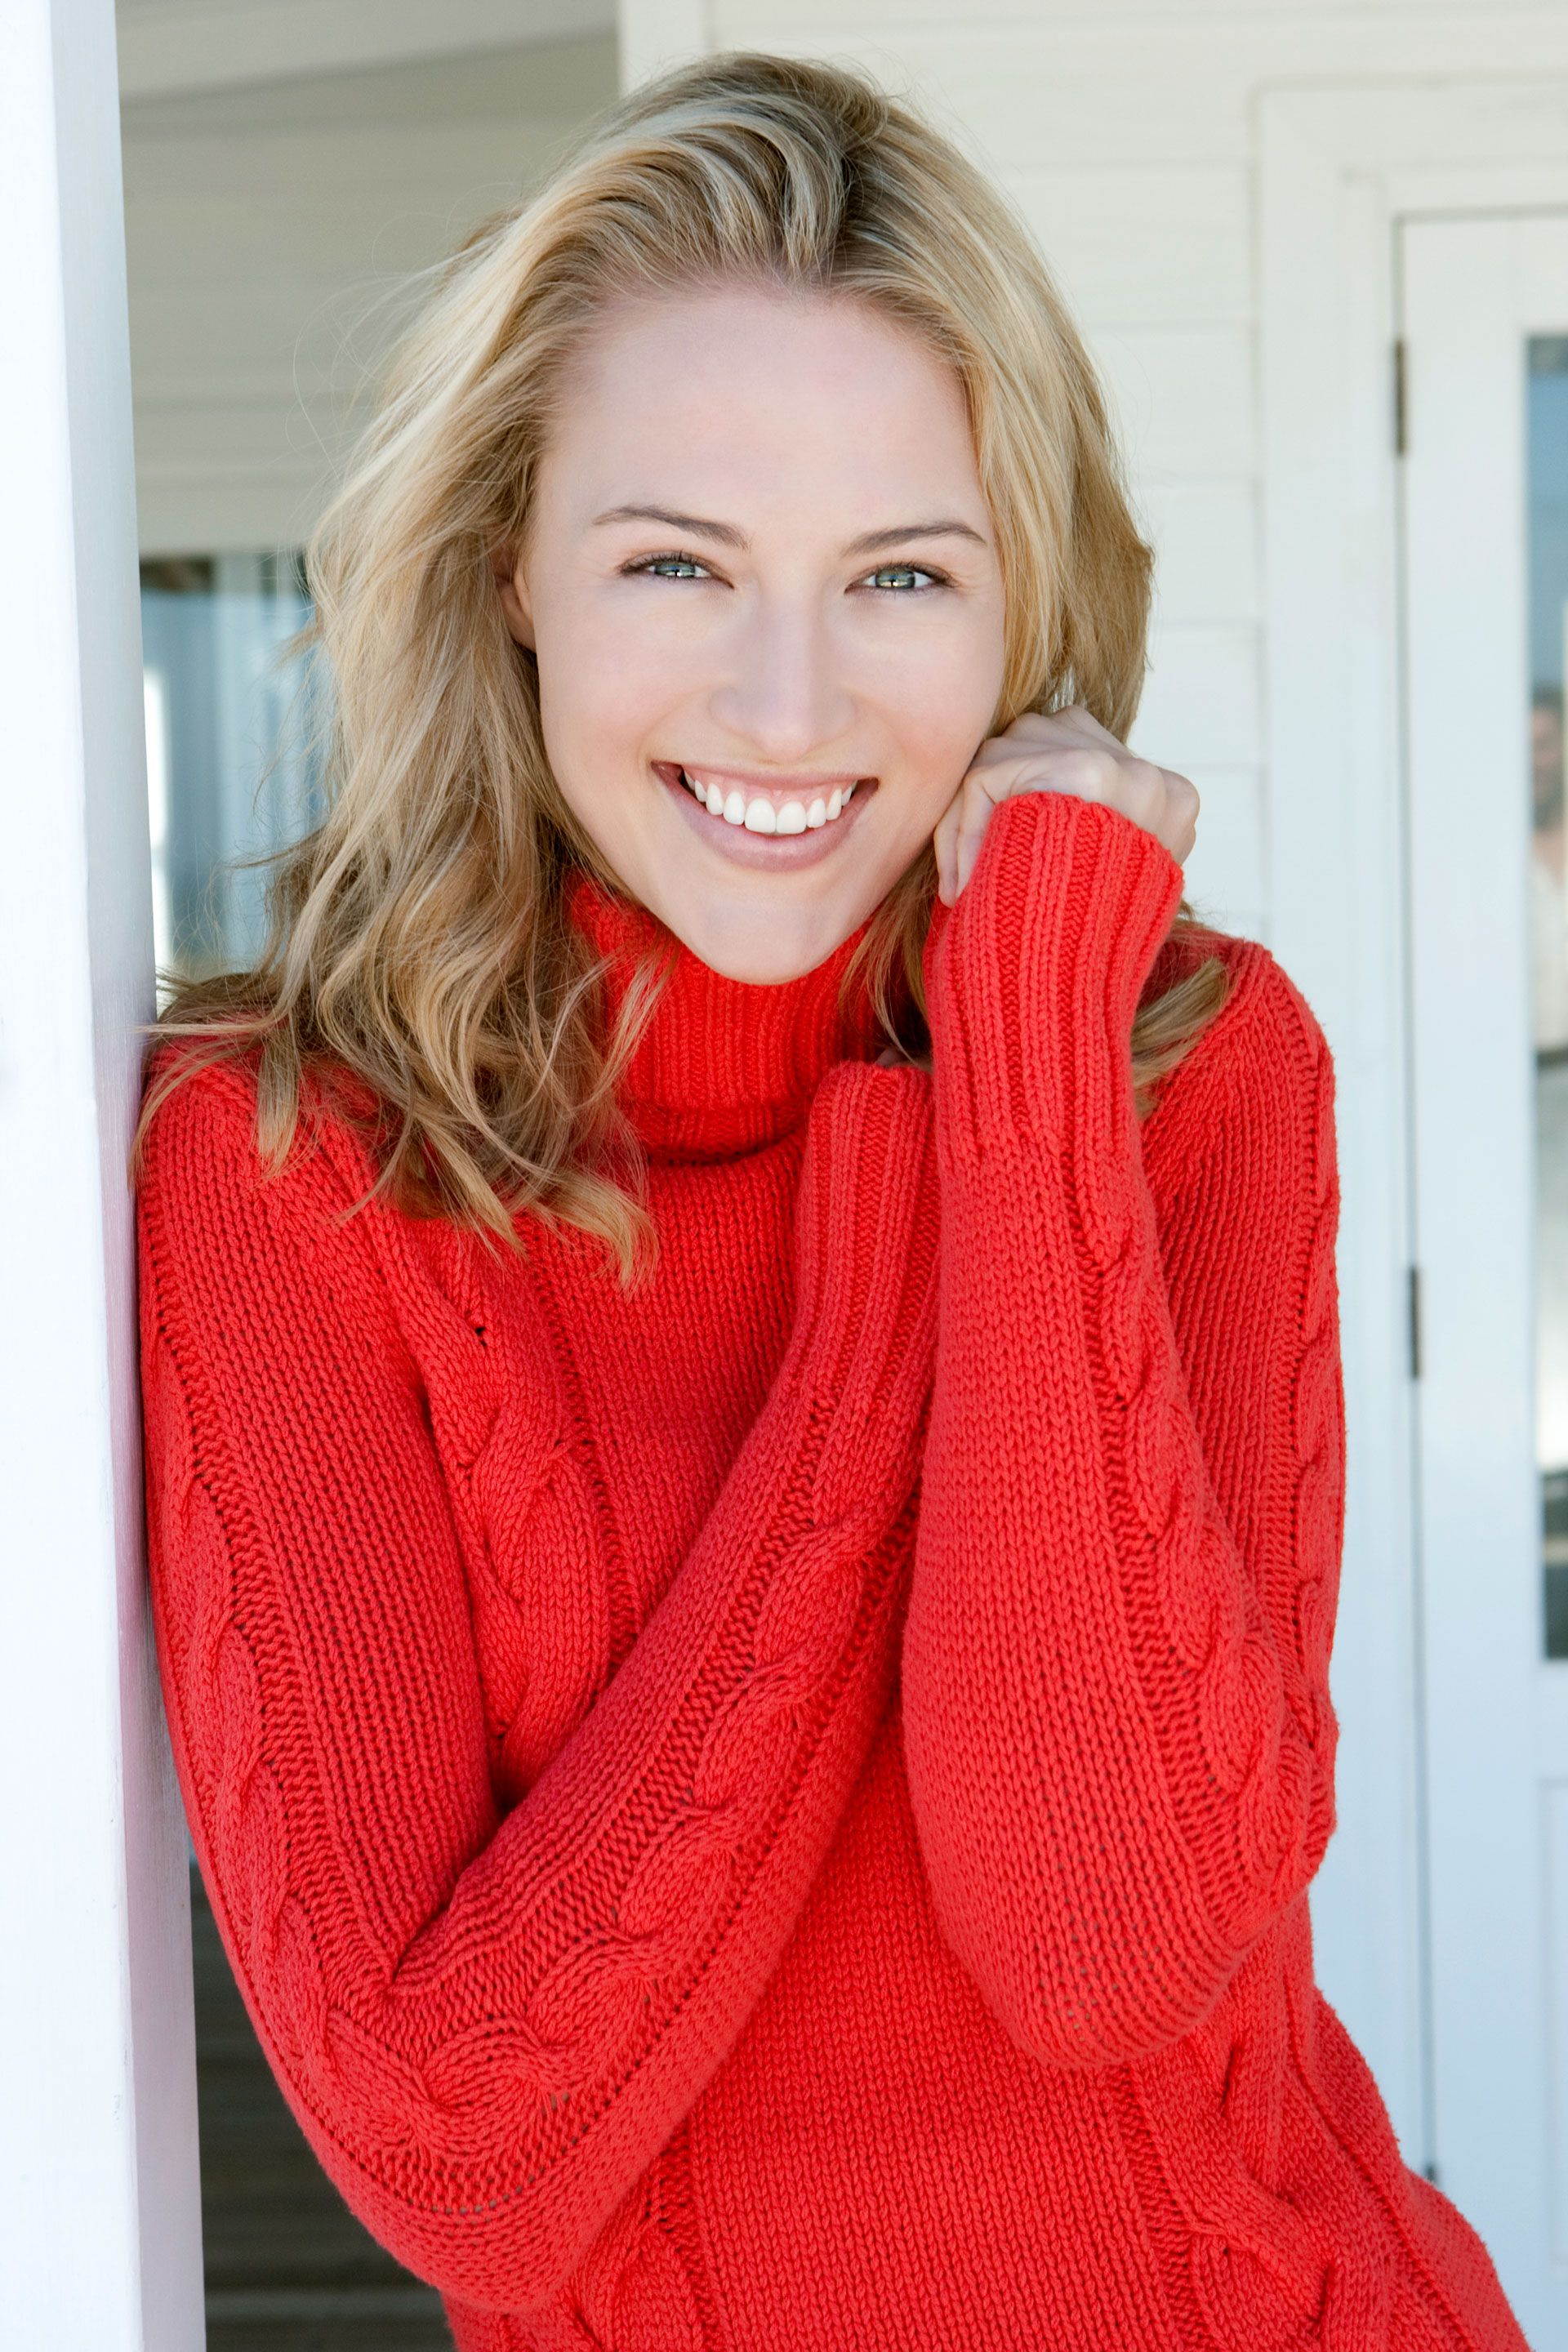 a woman in a bold red sweater